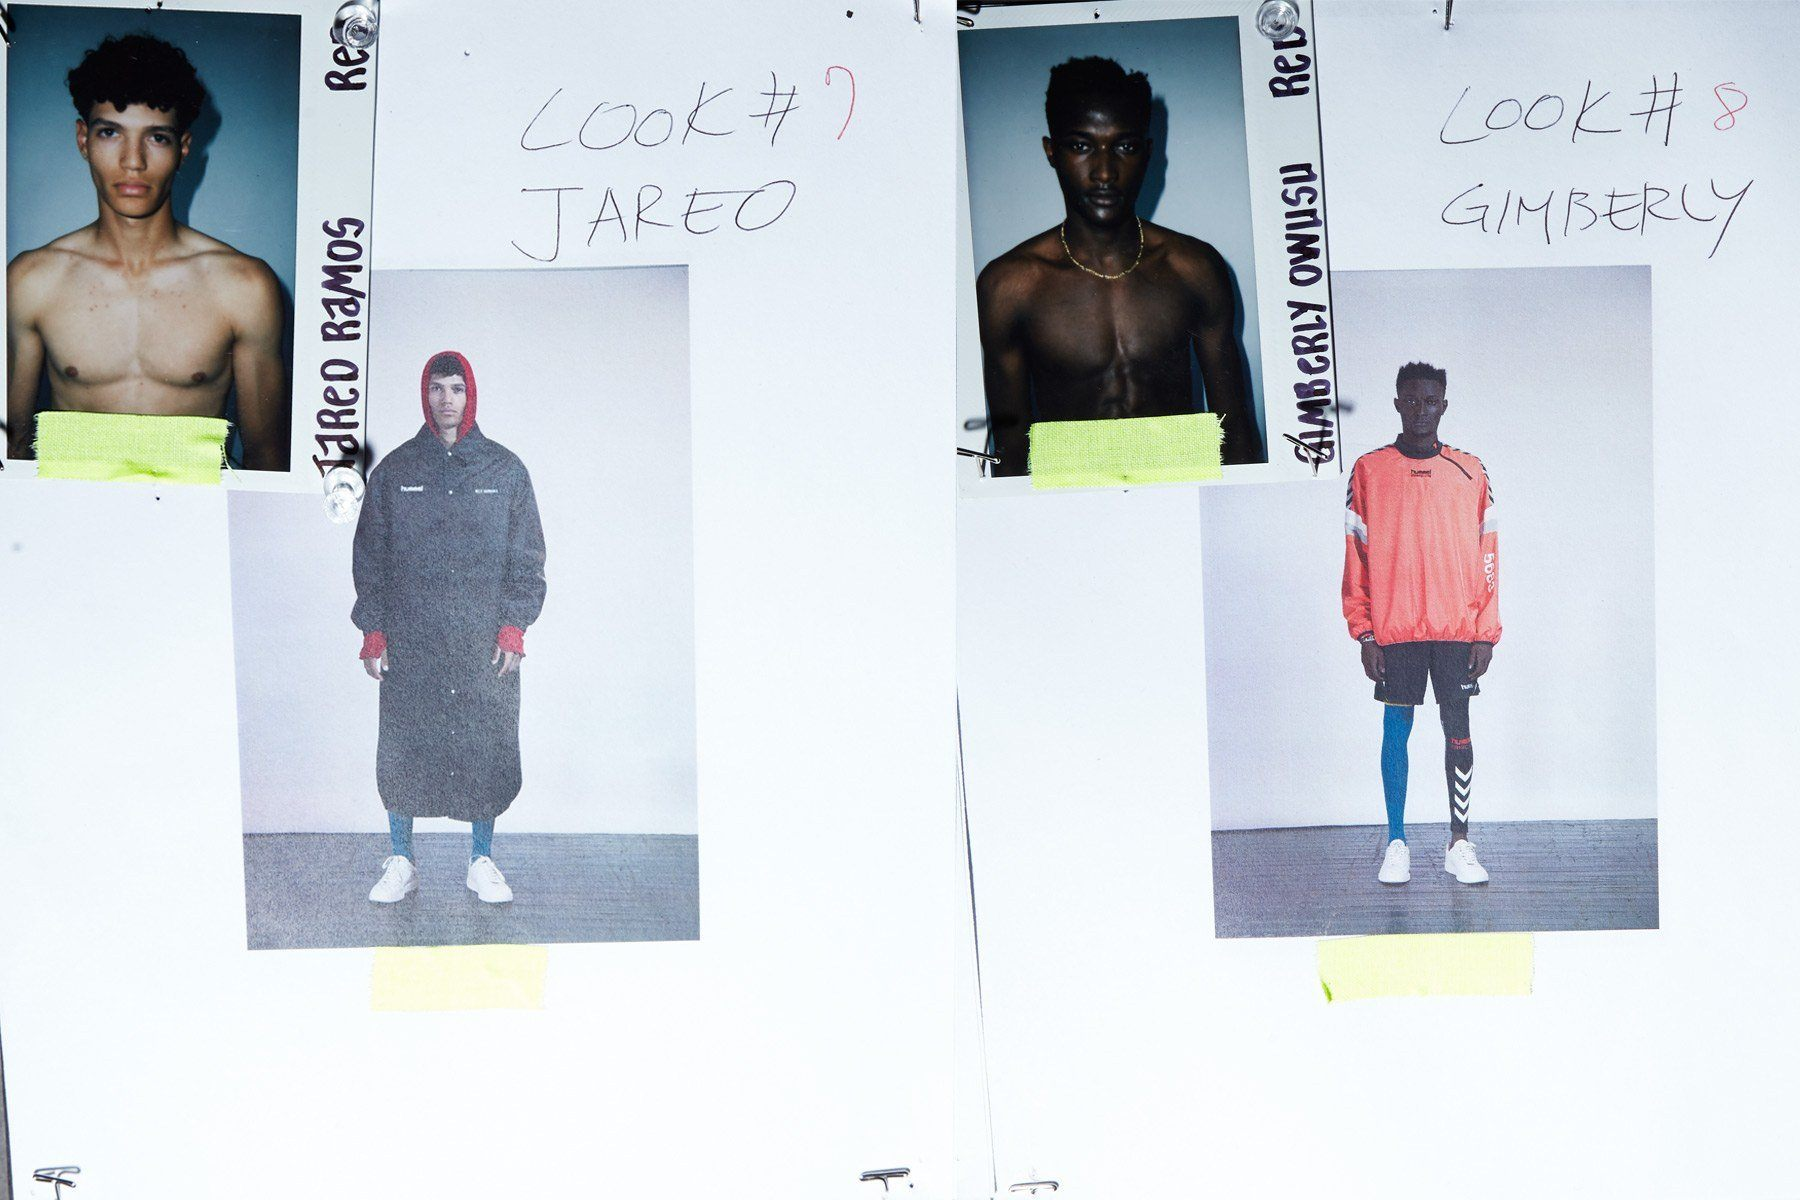 Backstage looks for male models Jared Ramos and Gimberly Owusu for Willy Chavarria Spring 2019. Ponyboy magazine.